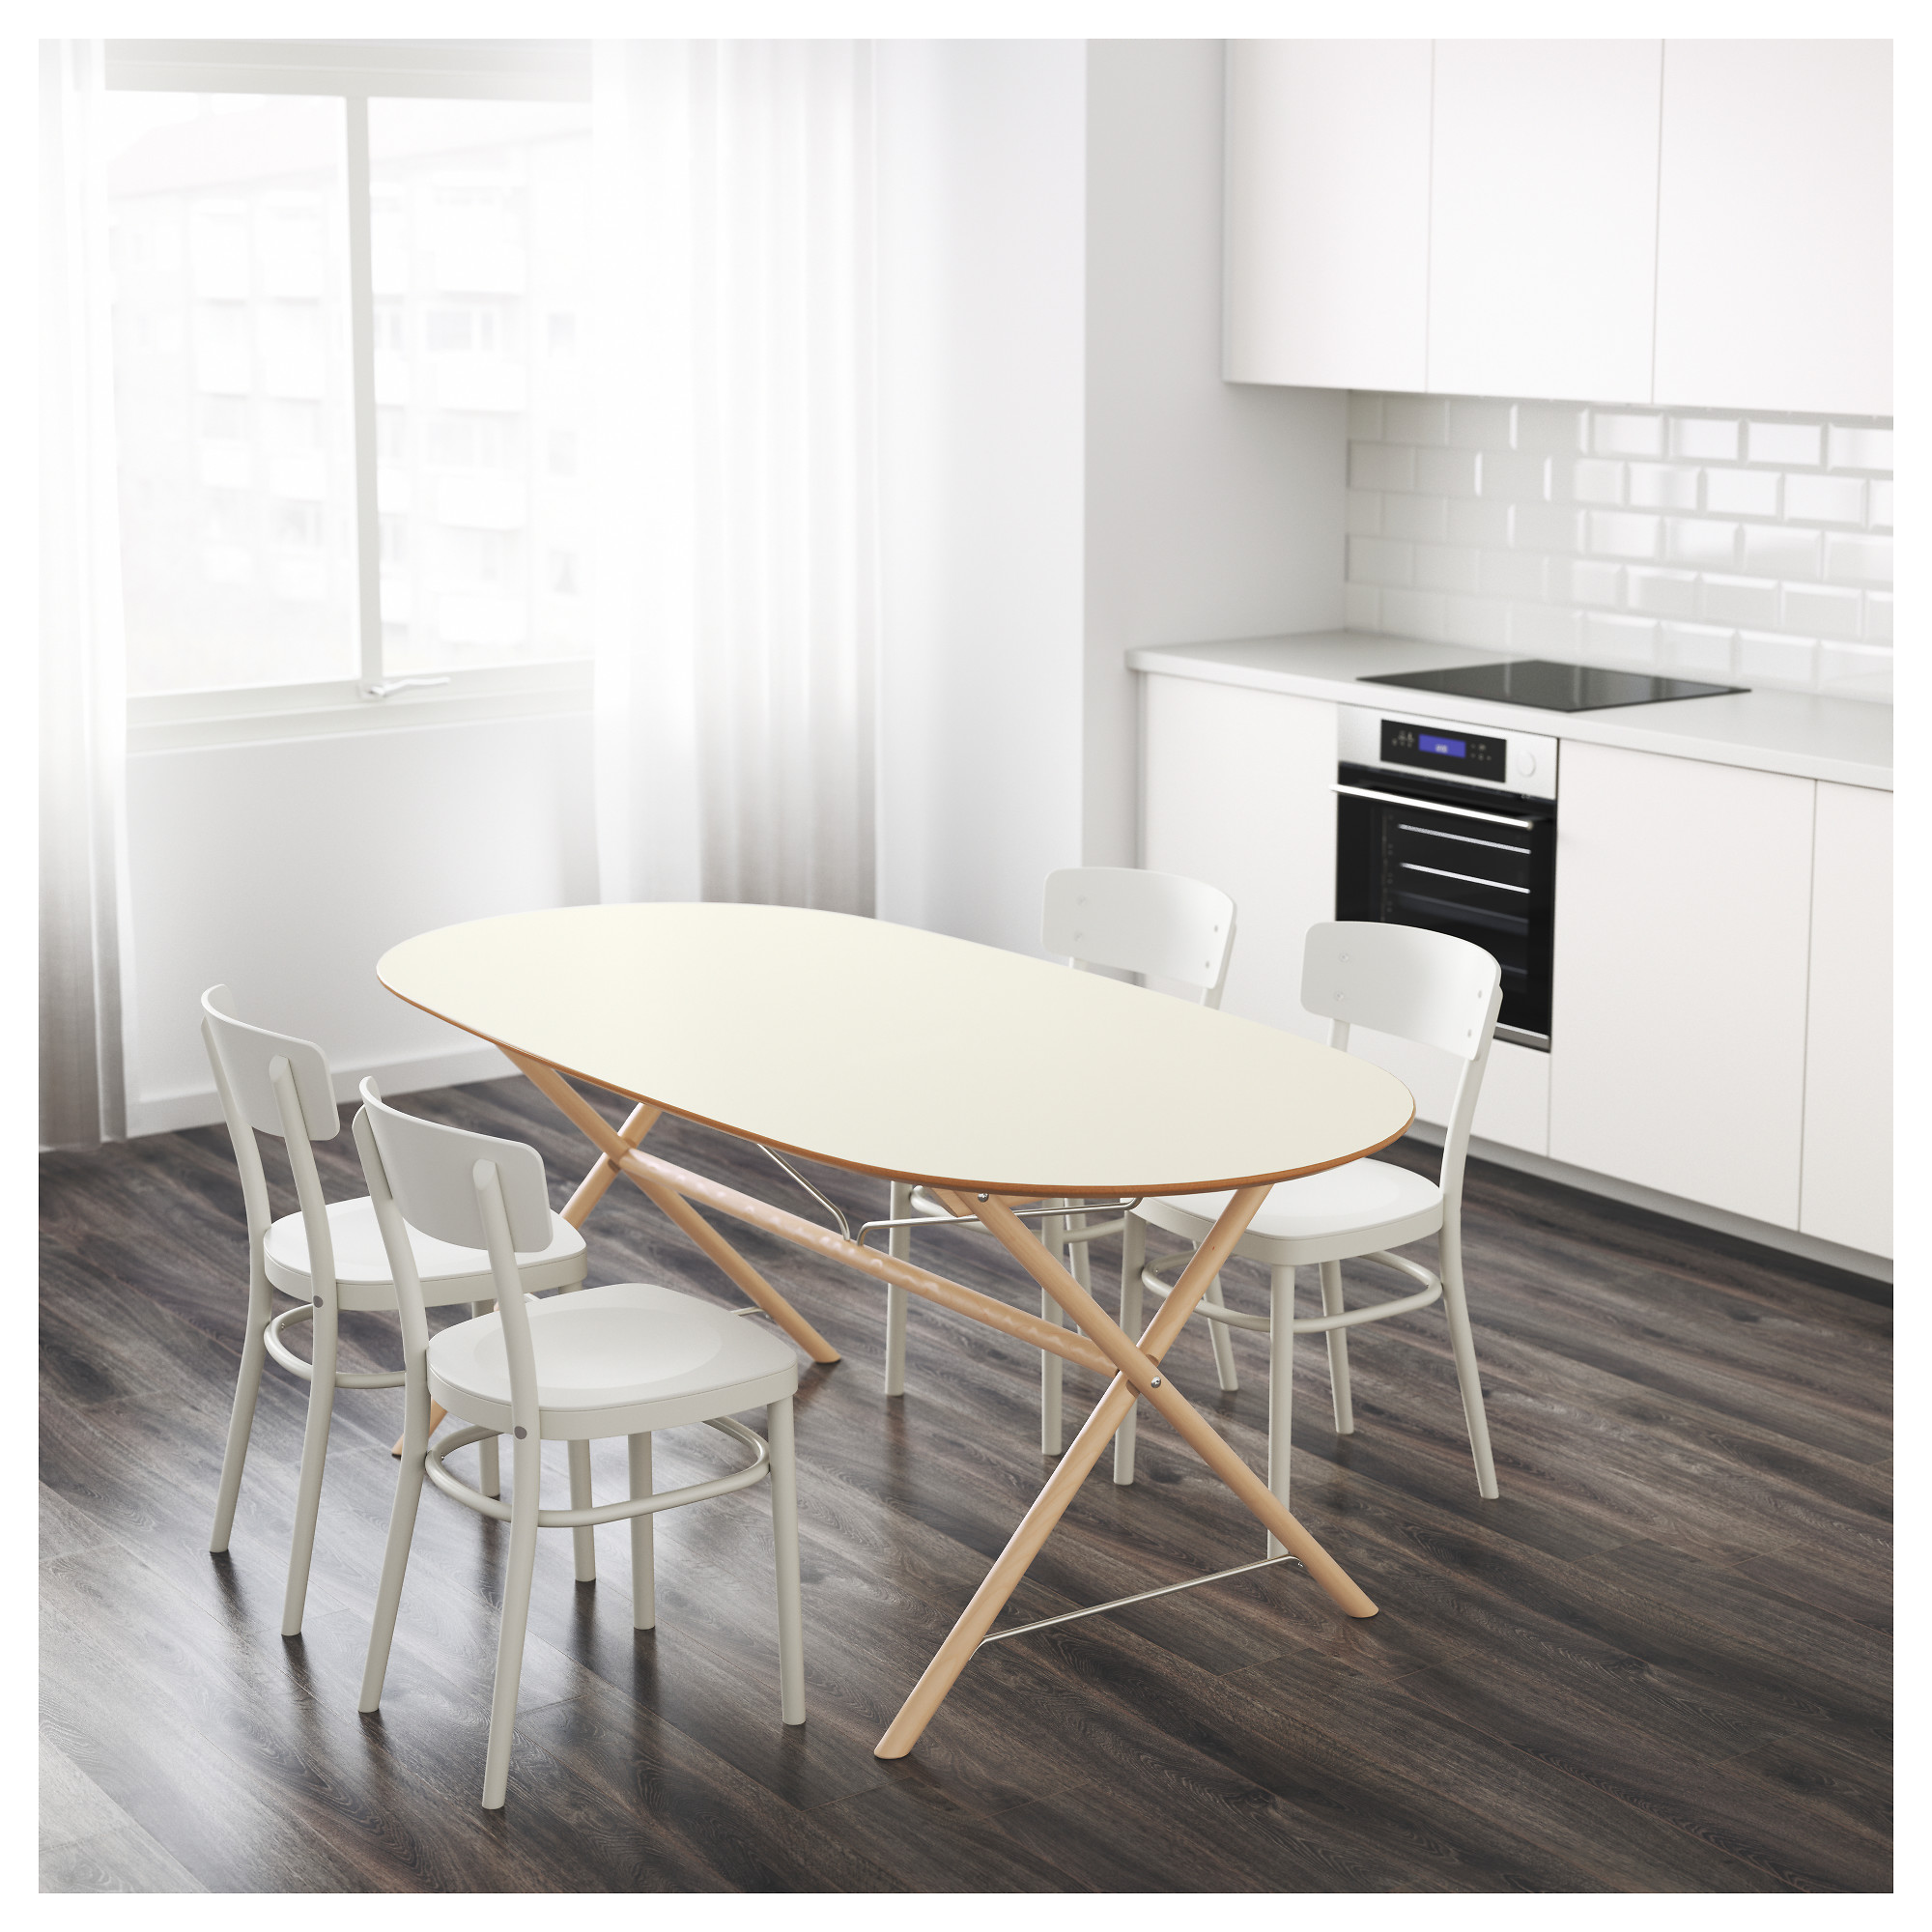 Table blanc laqu ikea awesome table basse de salon ikea table basse salon ik - Table basse en verre ikea ...